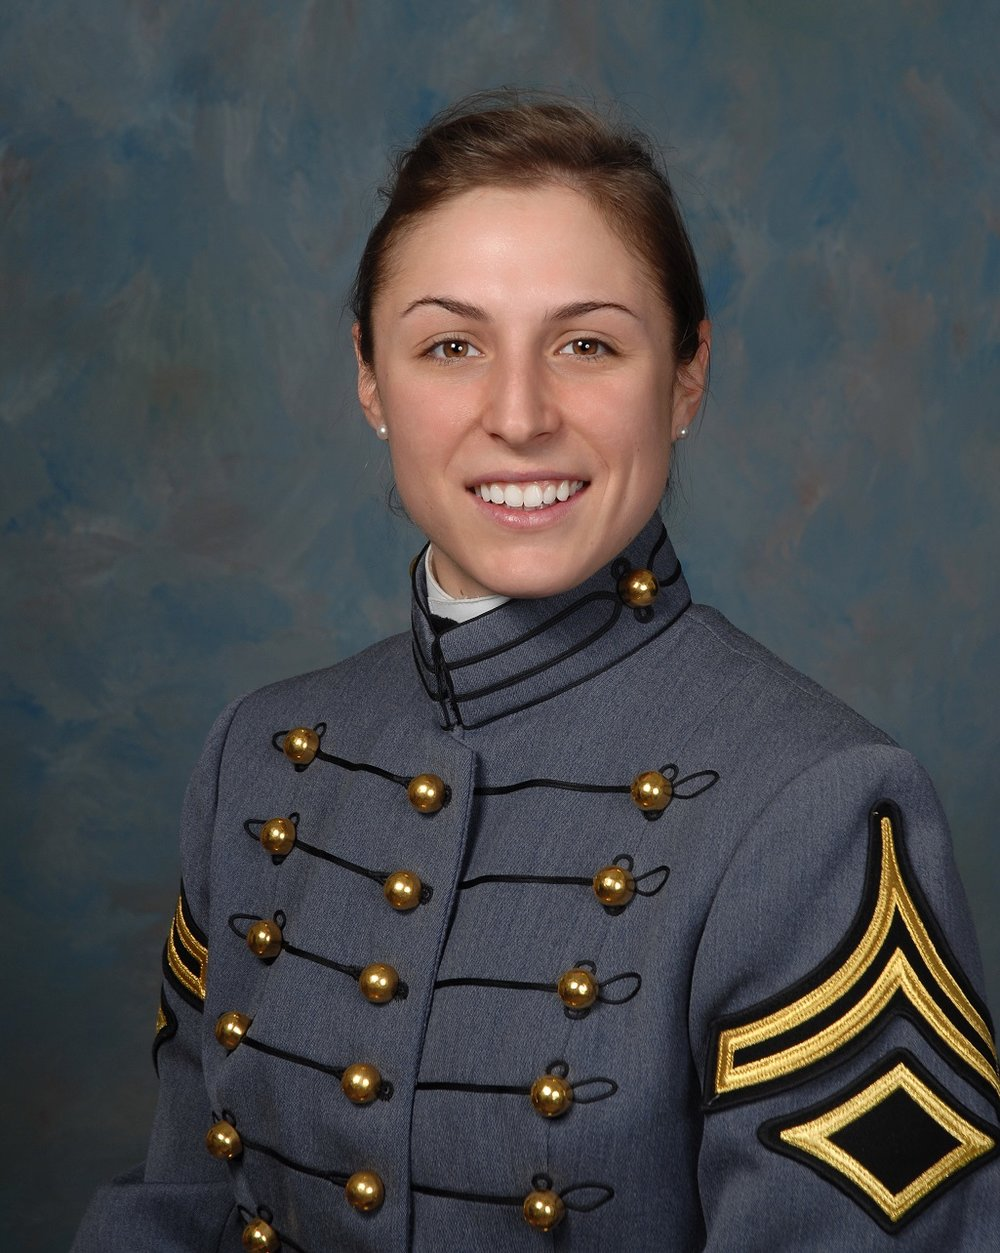 Shaye Haver as a cadet at West Point